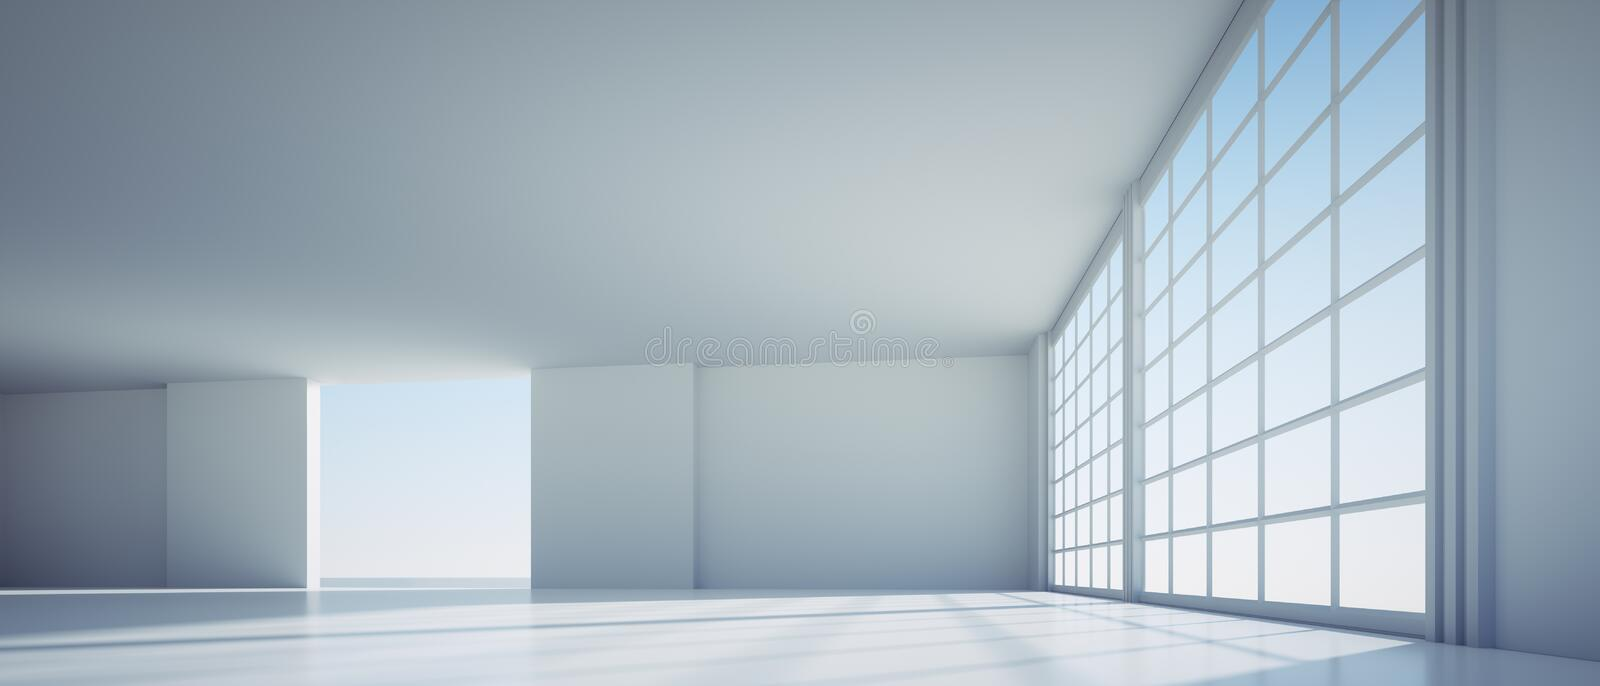 Empty large white industrial warehouse. In a factory with big windows - sunlight on the floor vector illustration